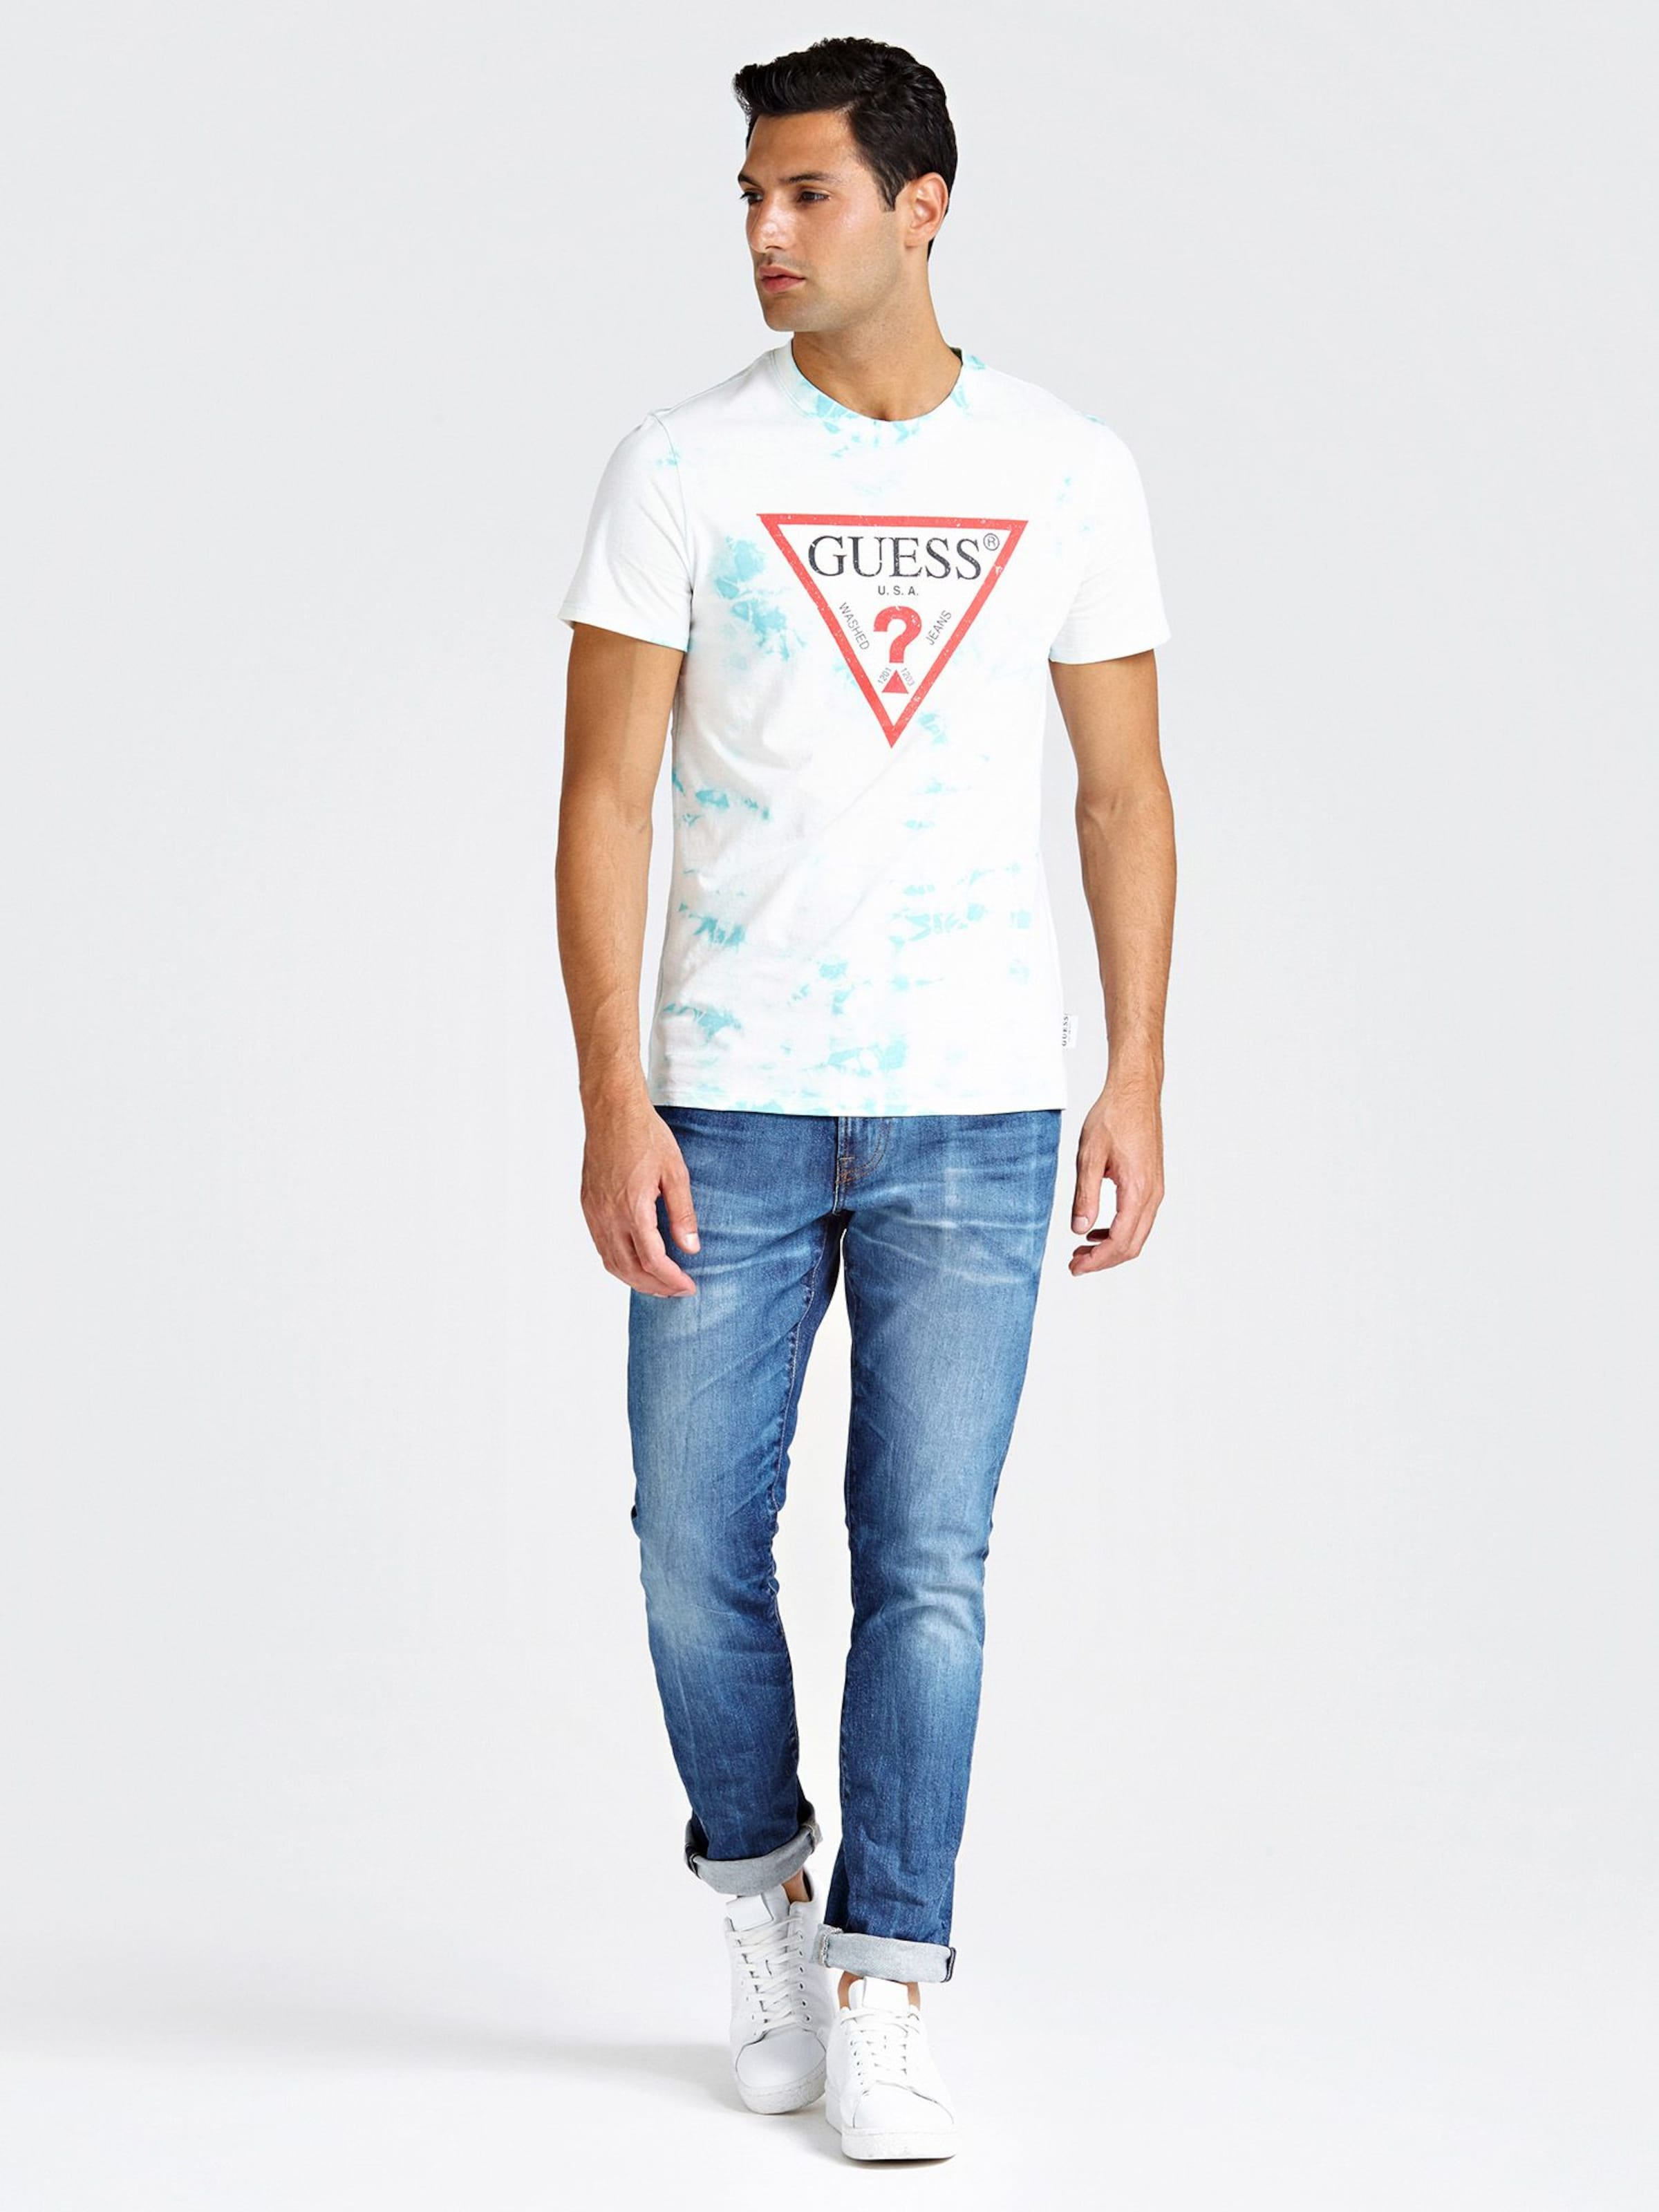 'distressed' 'distressed' TürkisWeiß Guess In 'distressed' Shirt Guess Shirt TürkisWeiß Shirt In Guess PXZikuO